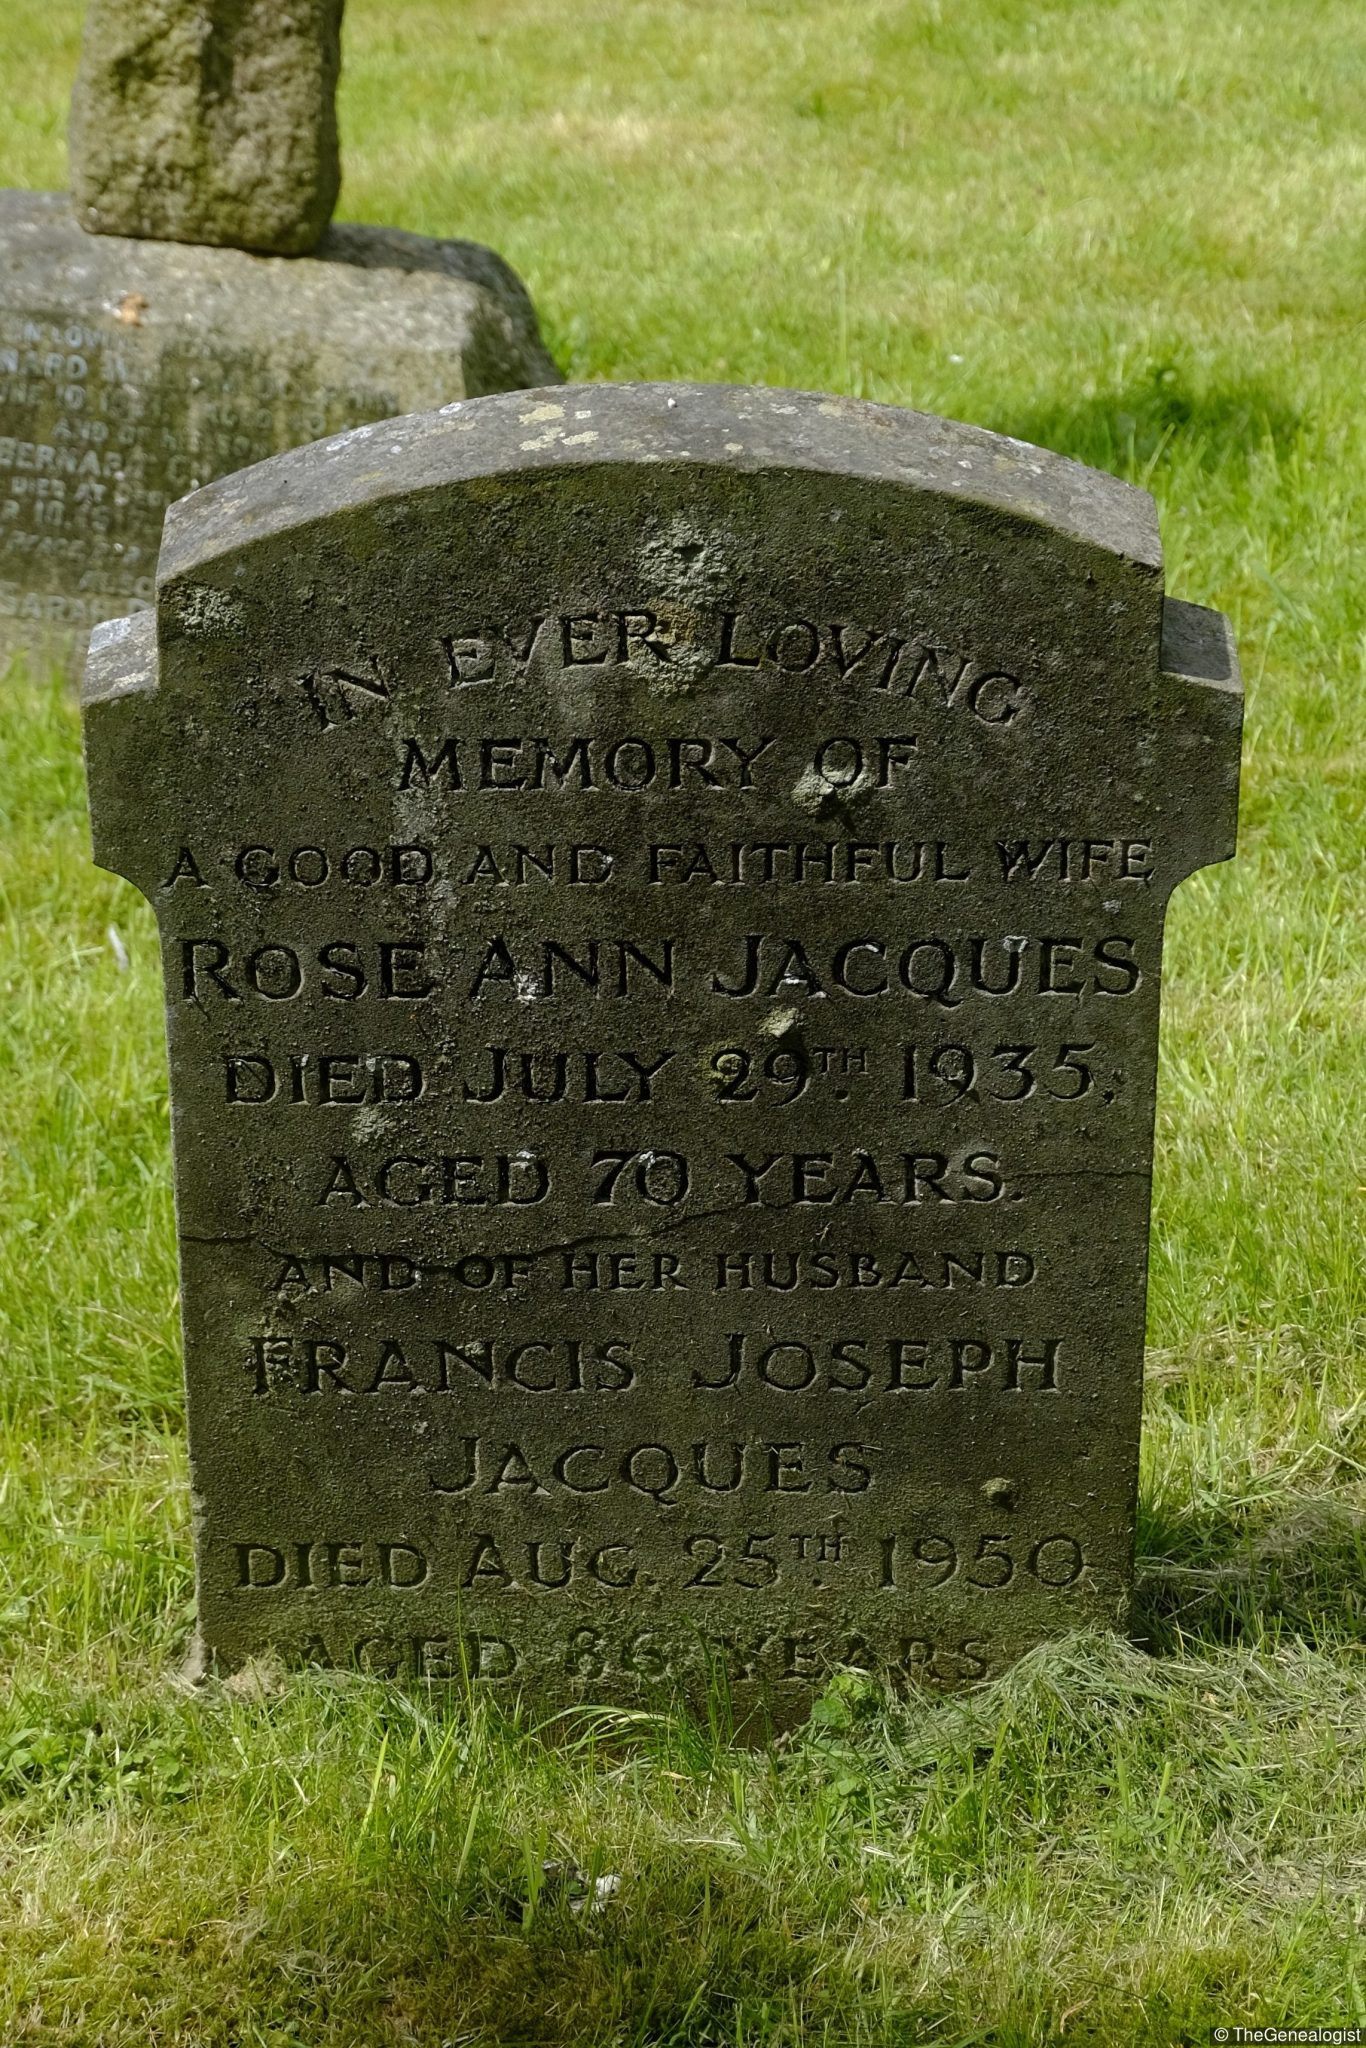 Frances-Jacques-and-Rose-Ann-Jacques-Head-Stone-St.-James-Longborough